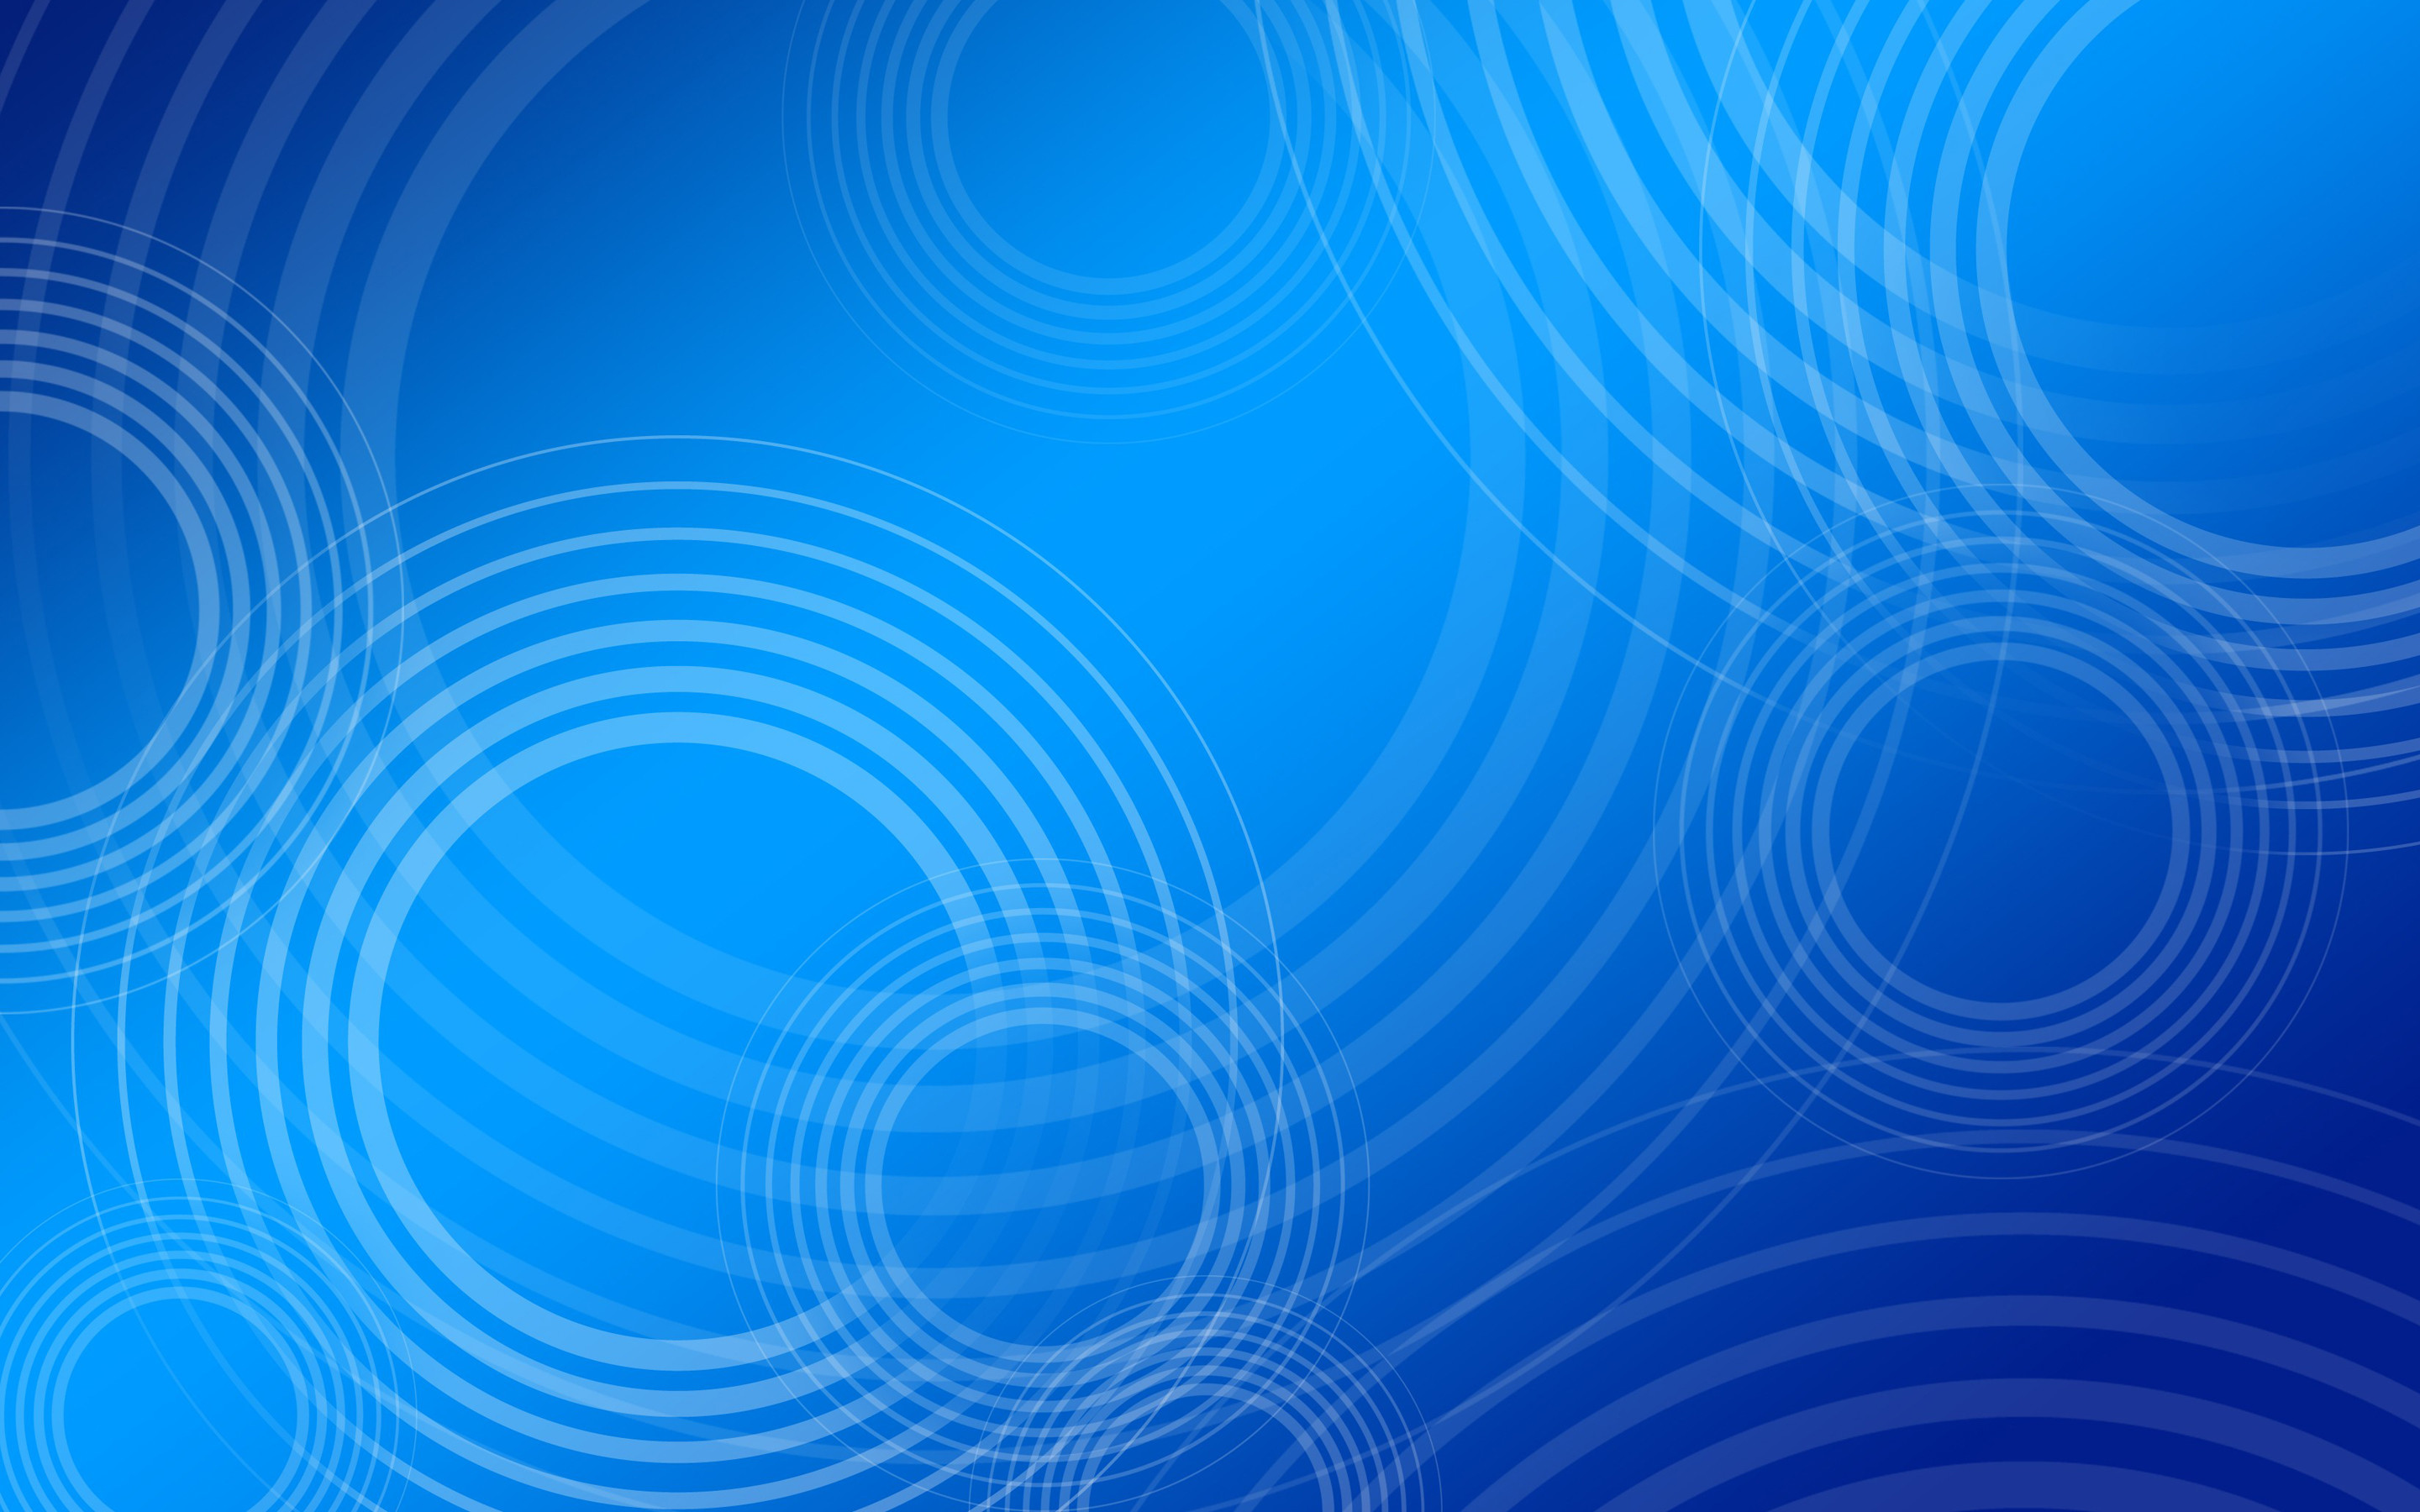 blue background wallpaper (73+ images)